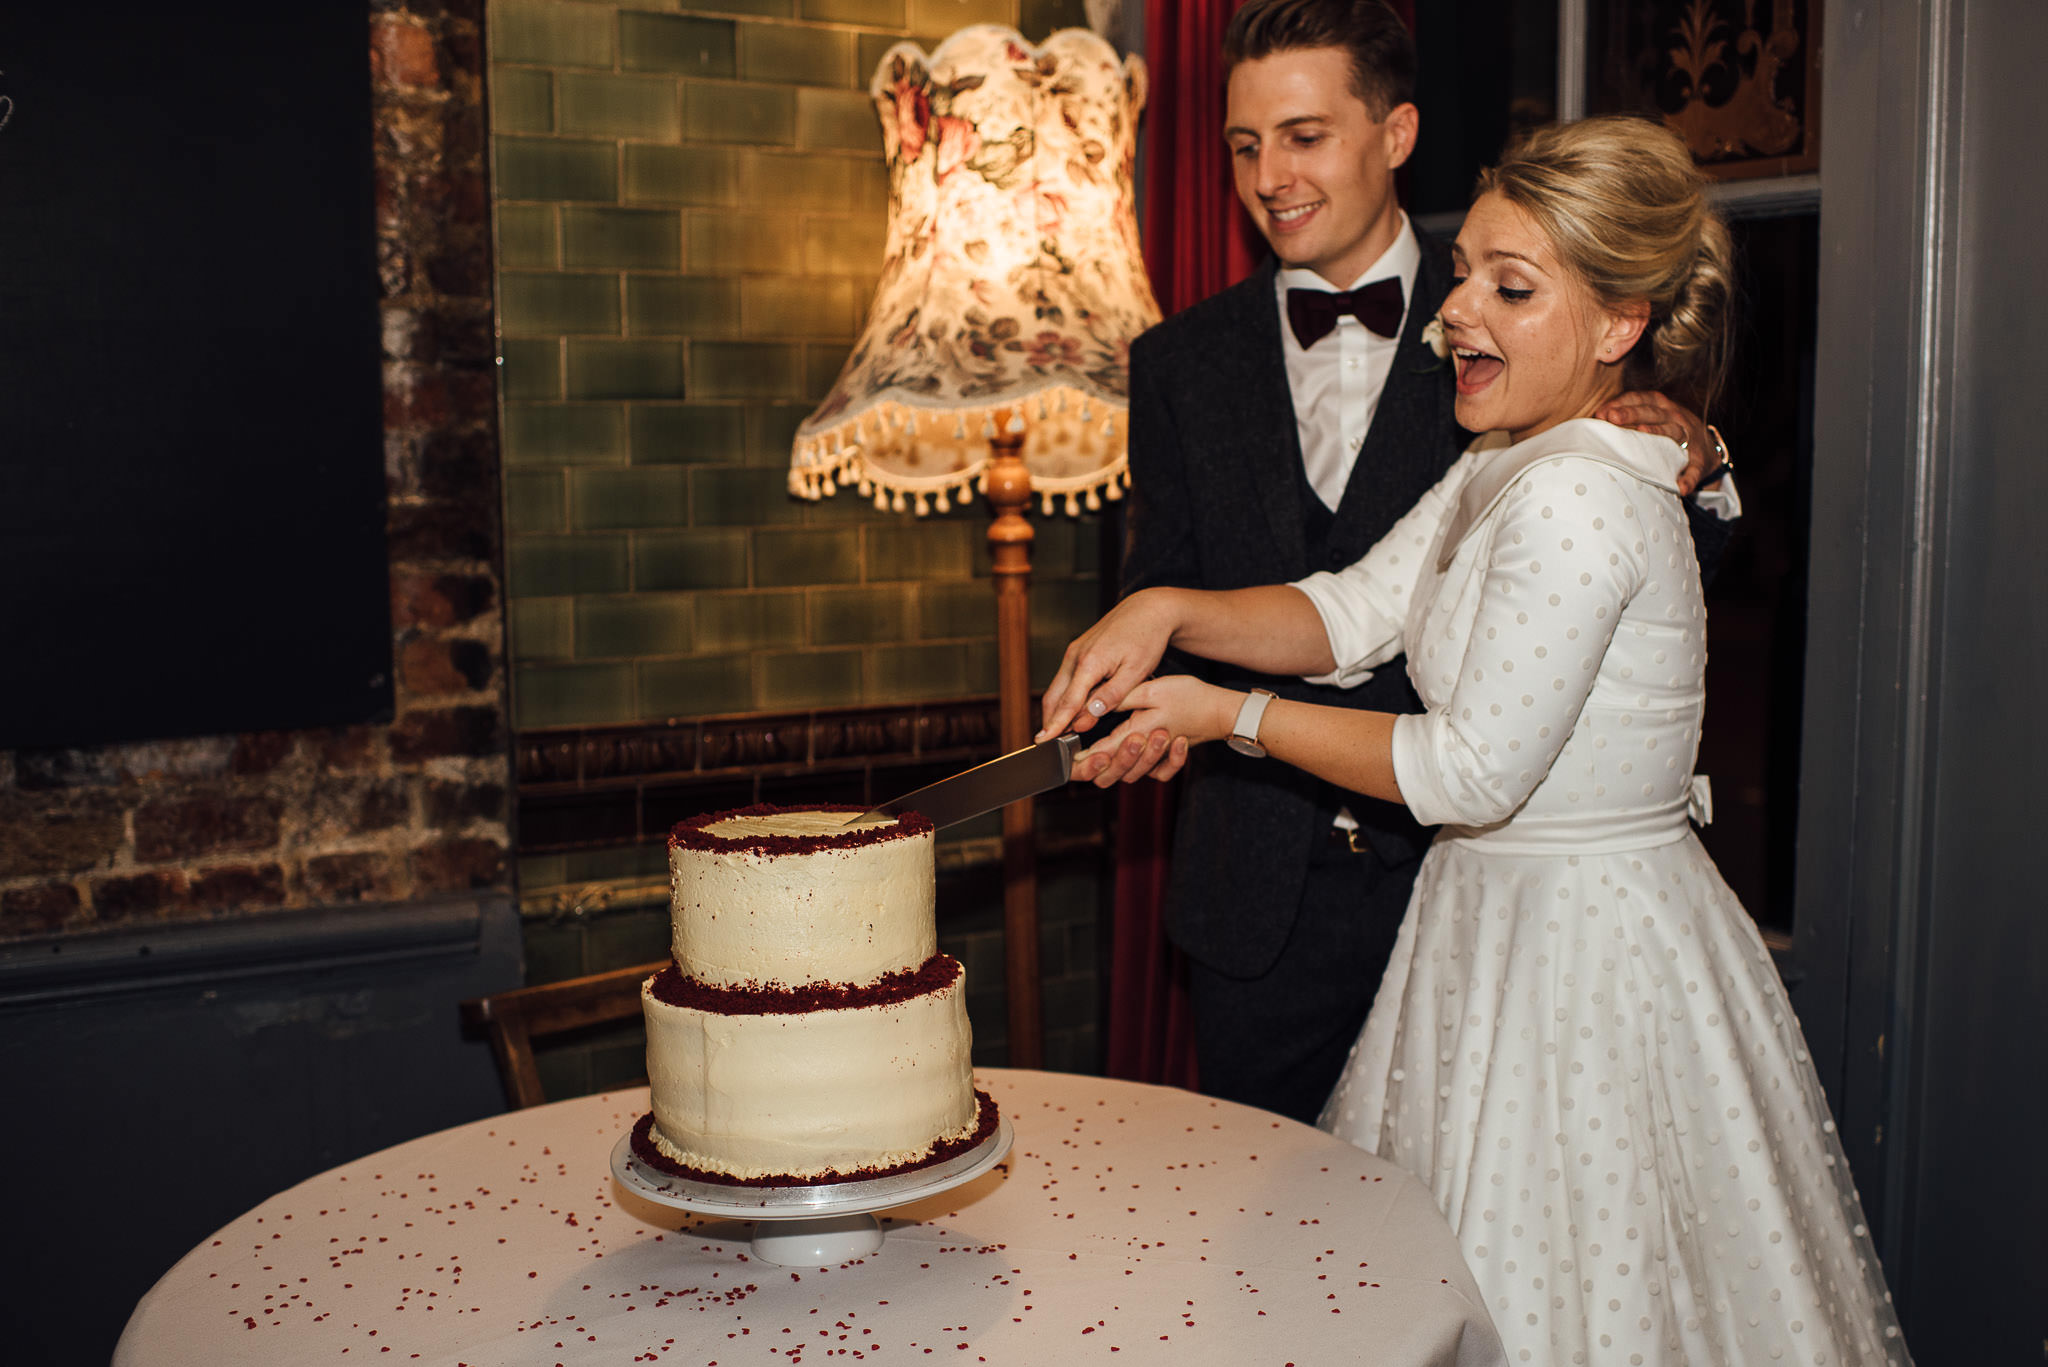 Cutting ooh lou lou vegan wedding cake in stoke newington town hall wedding by creative and alternative london wedding photographer the shannons photography